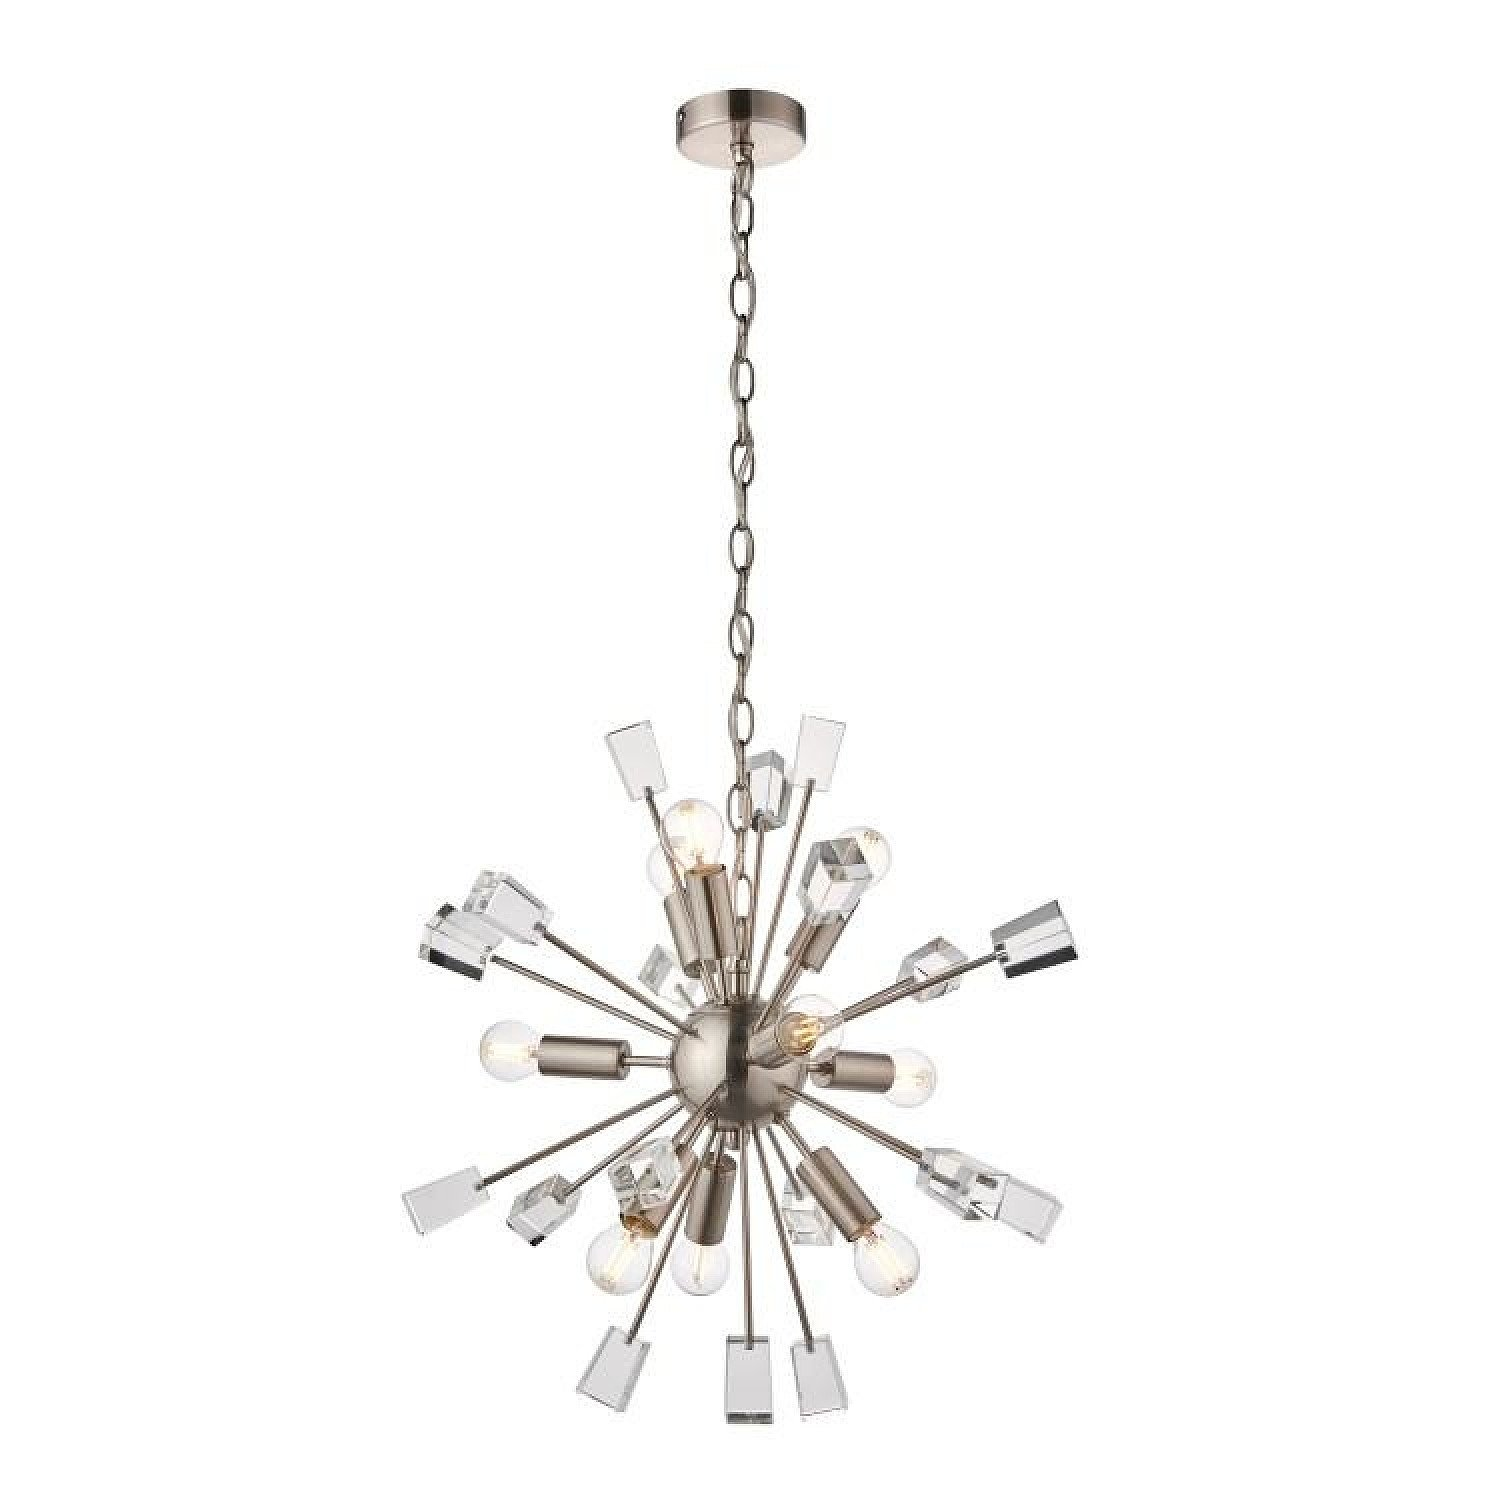 SALE - Gallery Direct Miro 9 Pendant Light Nickel   Outlet!